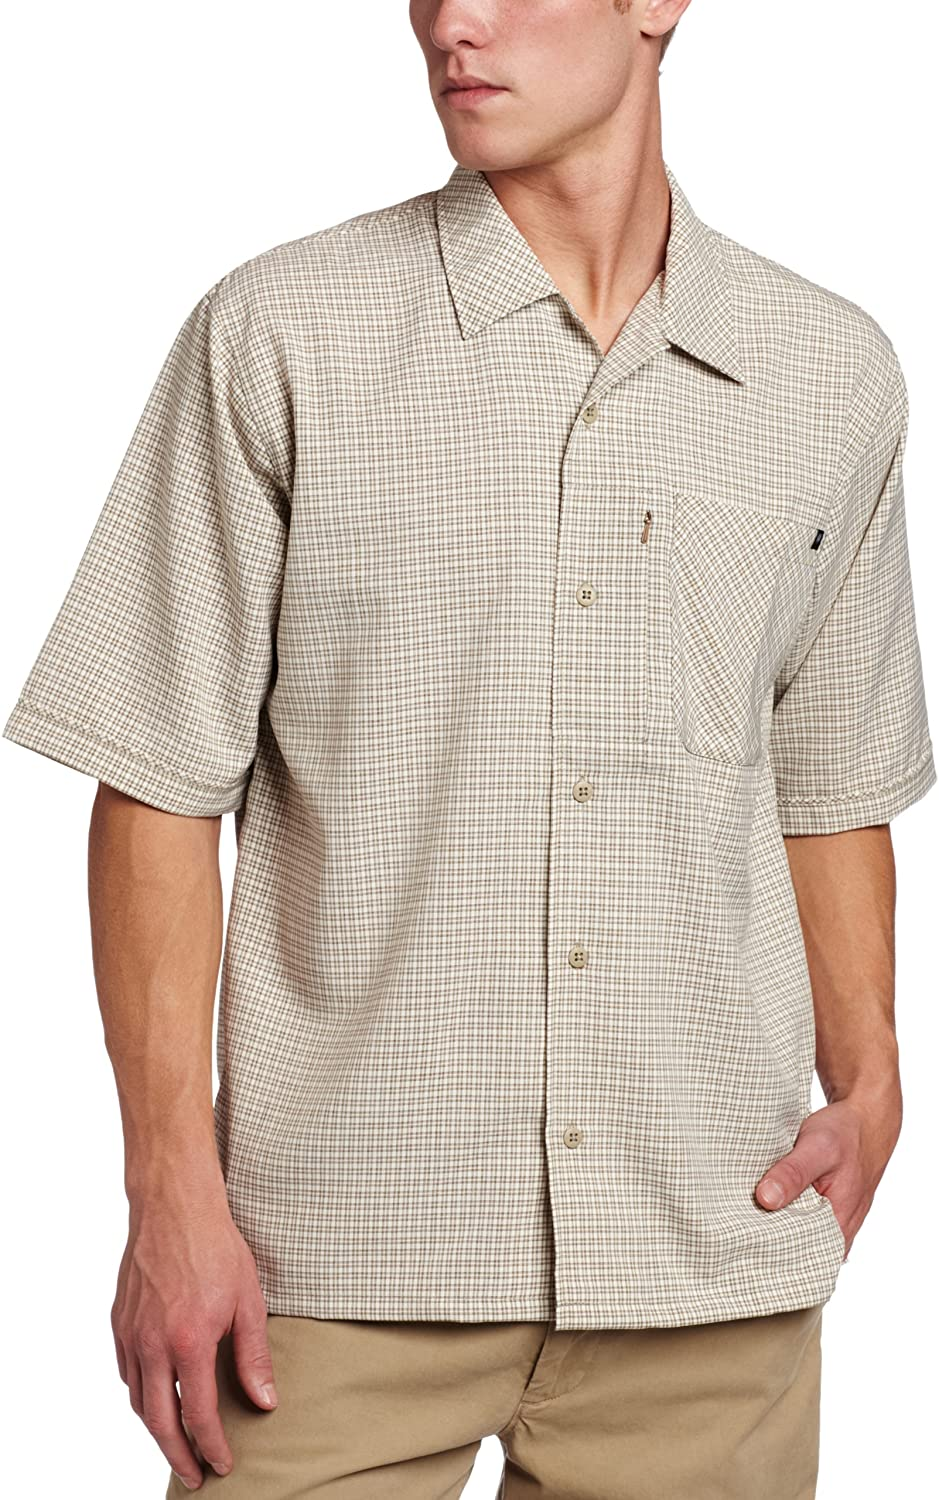 Blackhawk Men's 1700 Shirt